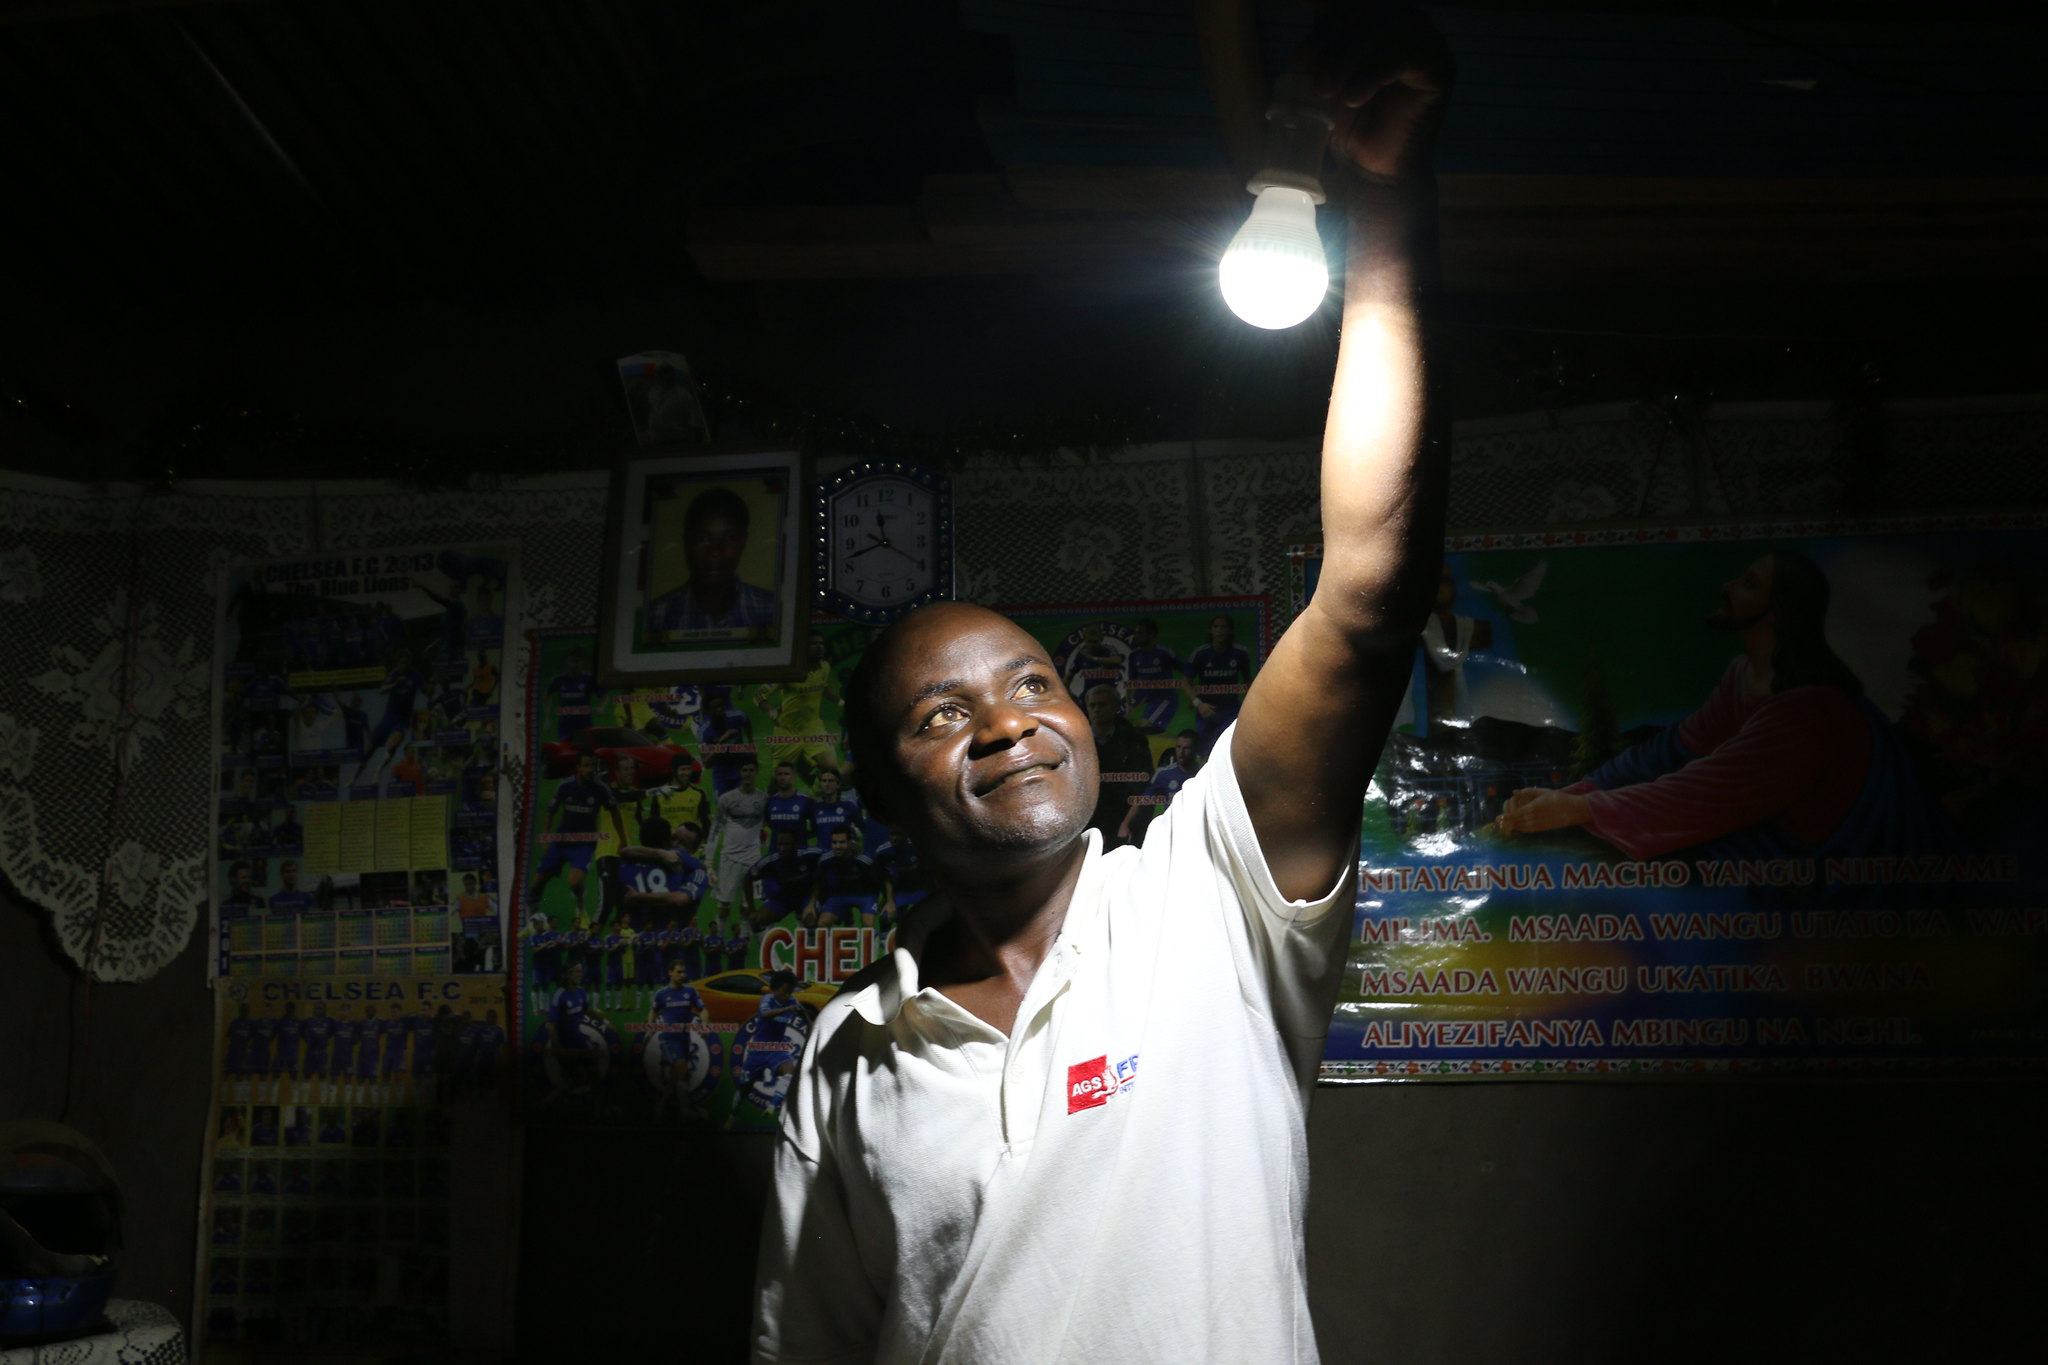 Power Africa: Renewable Energy and Energy Efficient Technologies